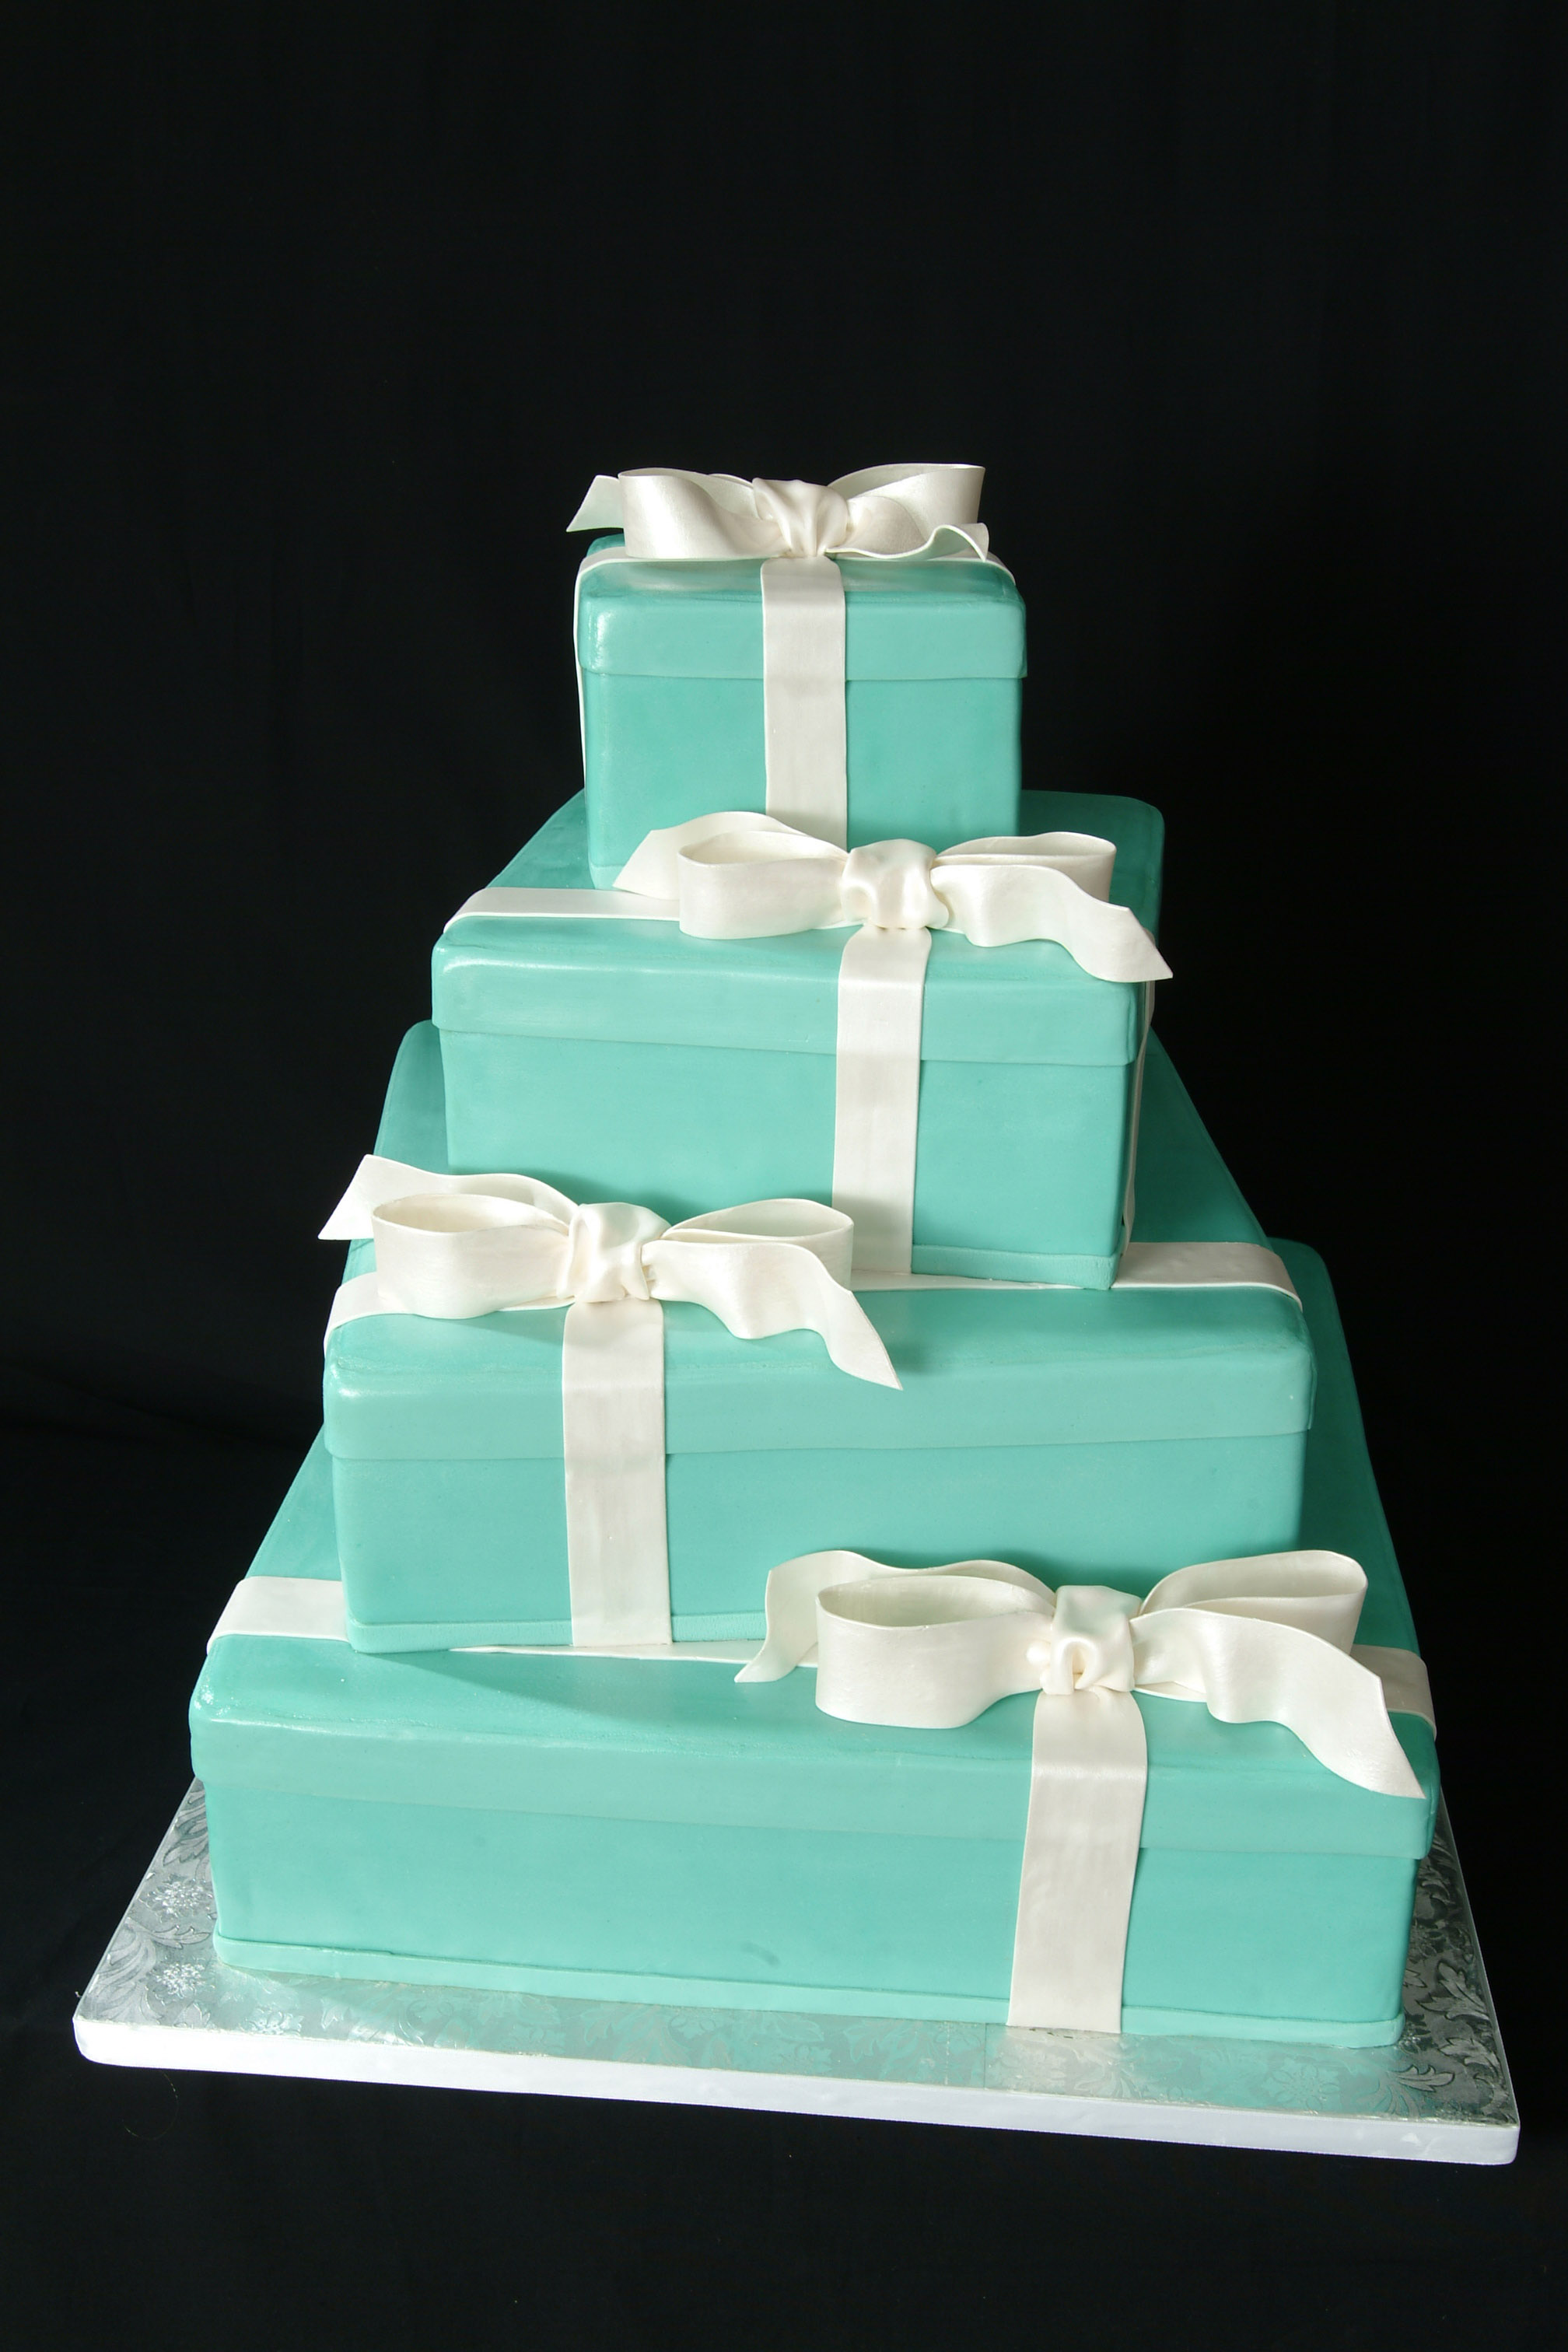 Tiffany Blue Wedding Cake Stands Hot Girls Wallpaper